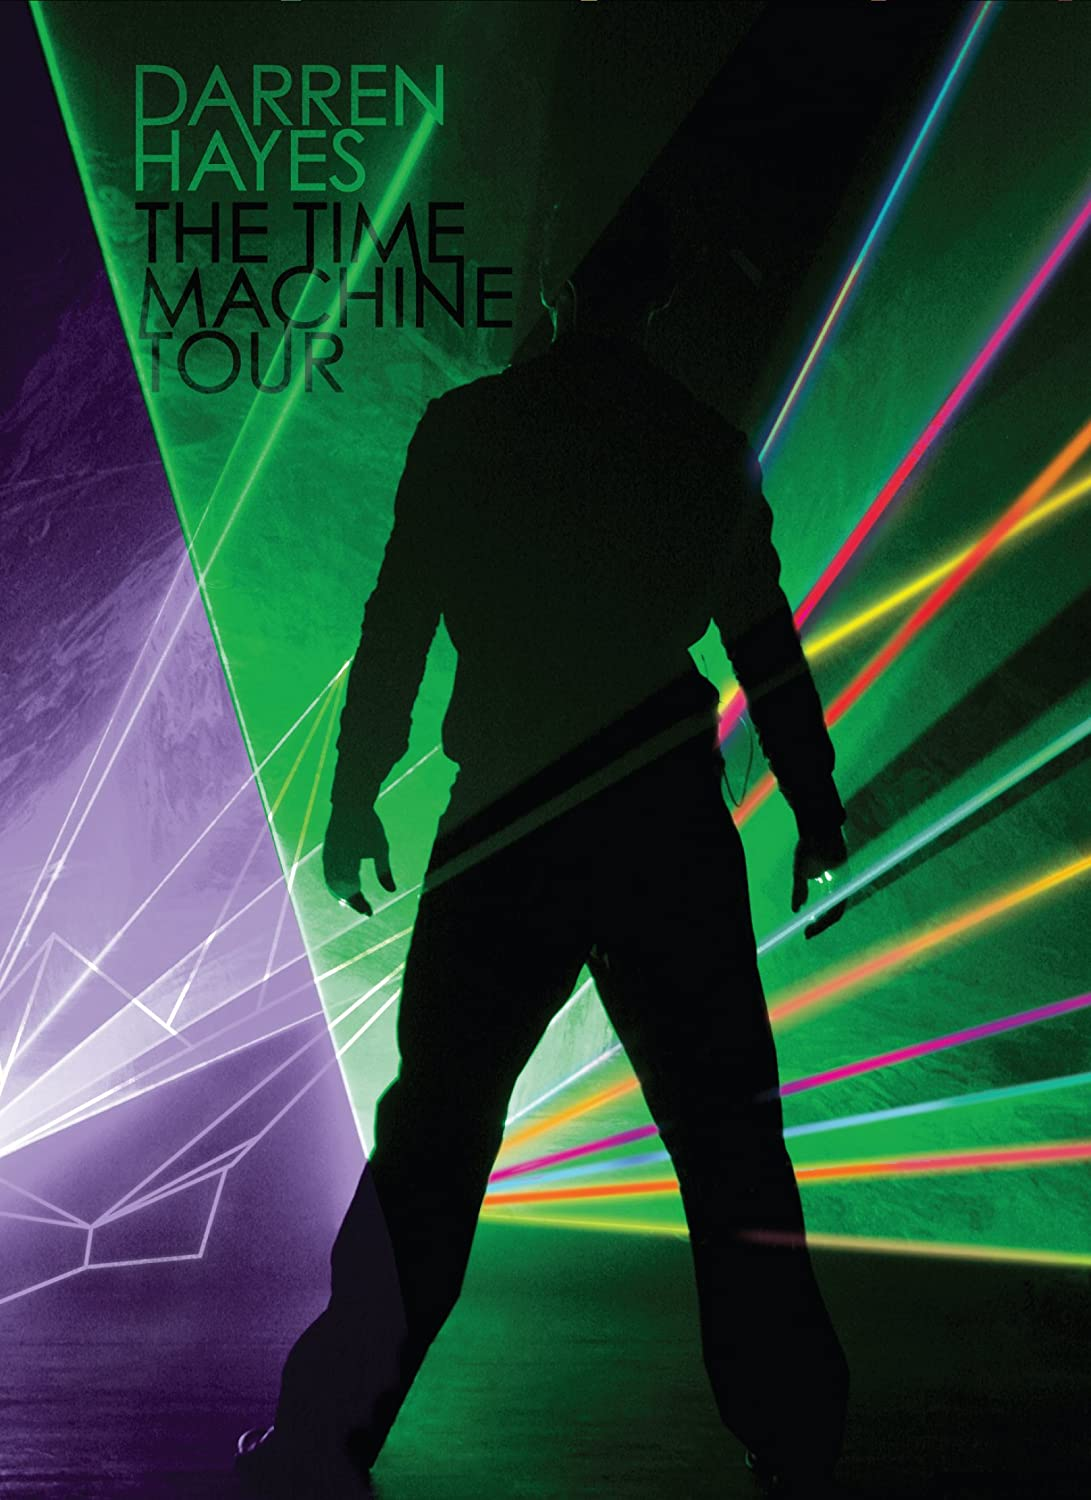 DARREN  HAYES The Time Machine Tour